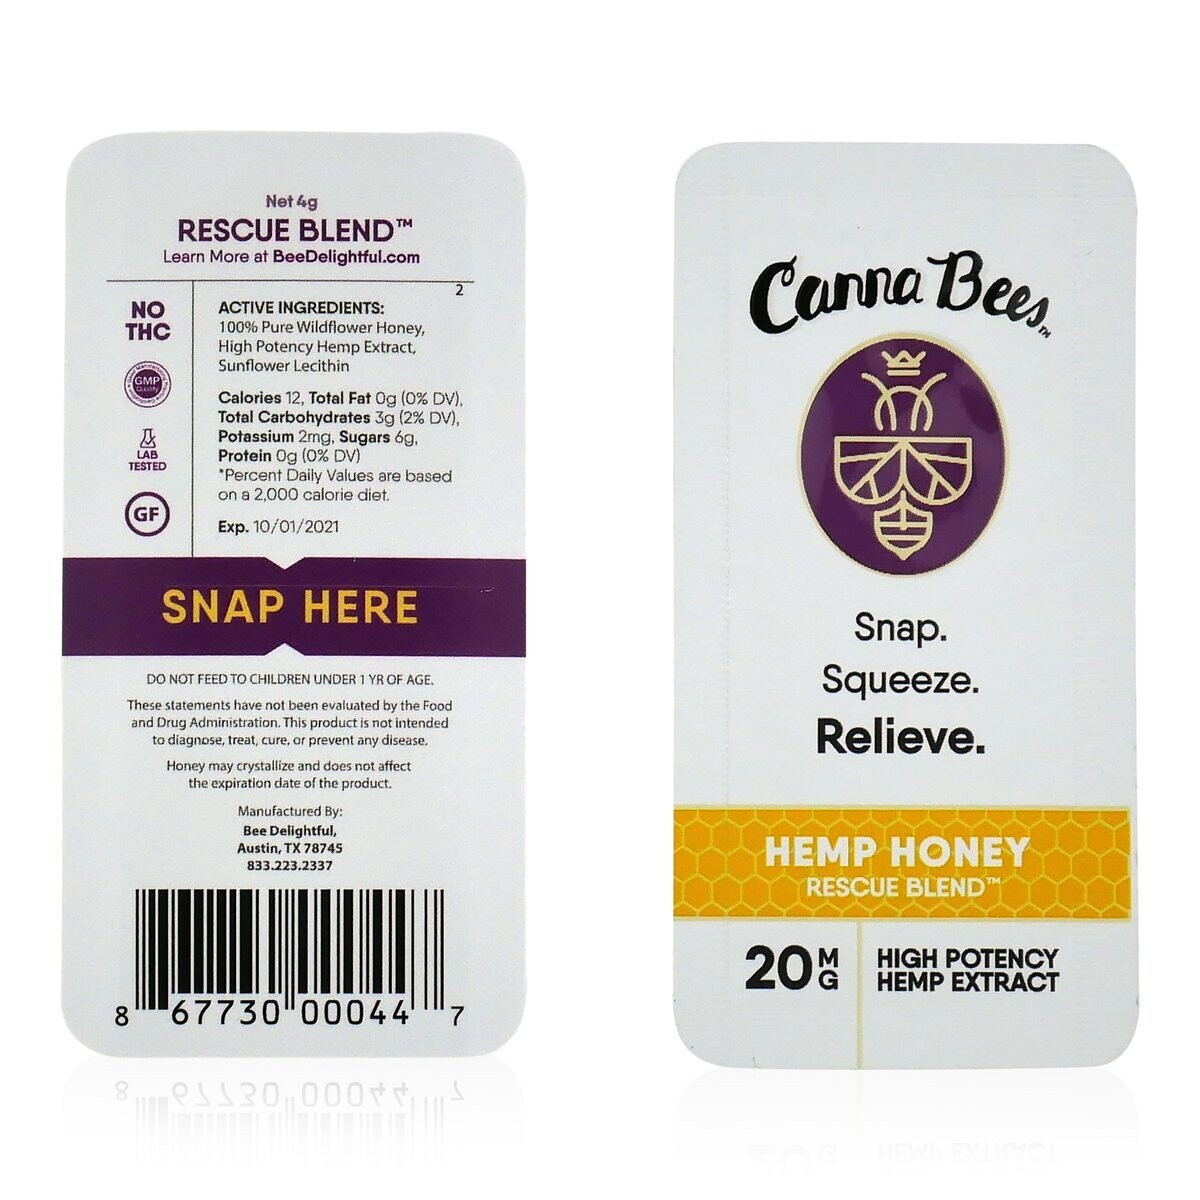 Canna Bees Single Snap Pack